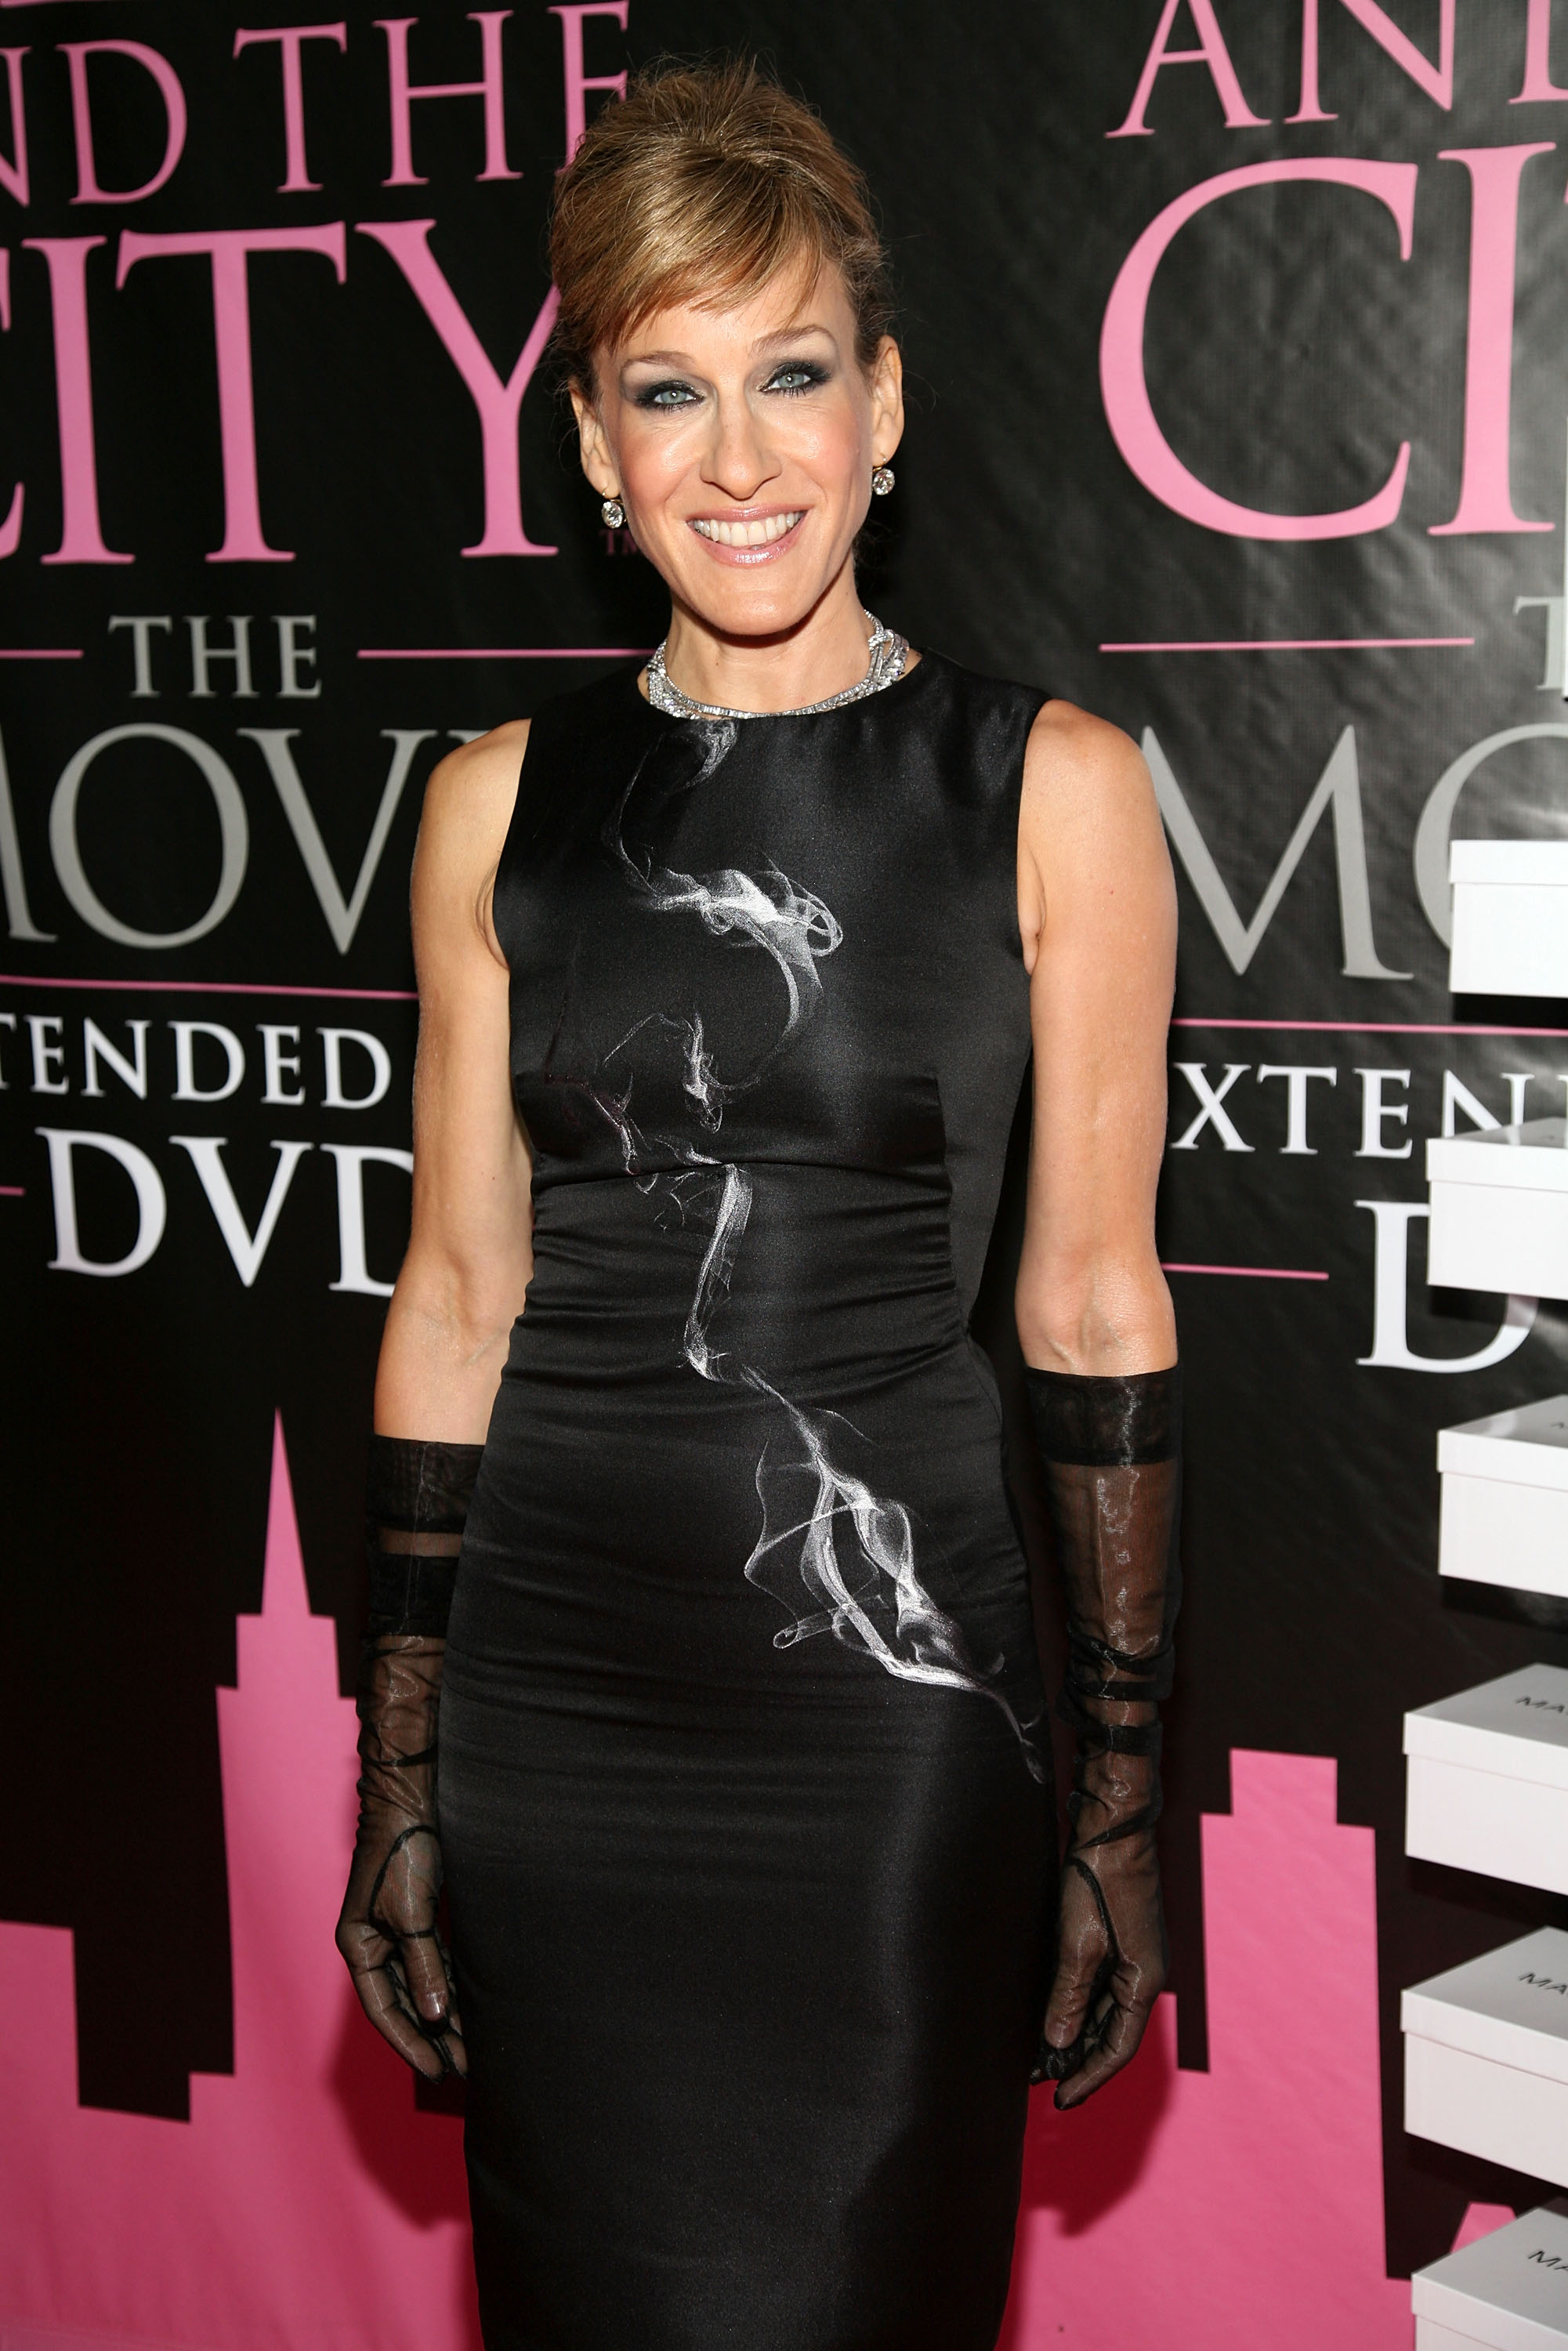 04137_Celebutopia-Sarah_Jessica_Parker-Sex_and_the_City_The_Movie_DVD_launch_in_New_York_City-02_122_589lo.jpg